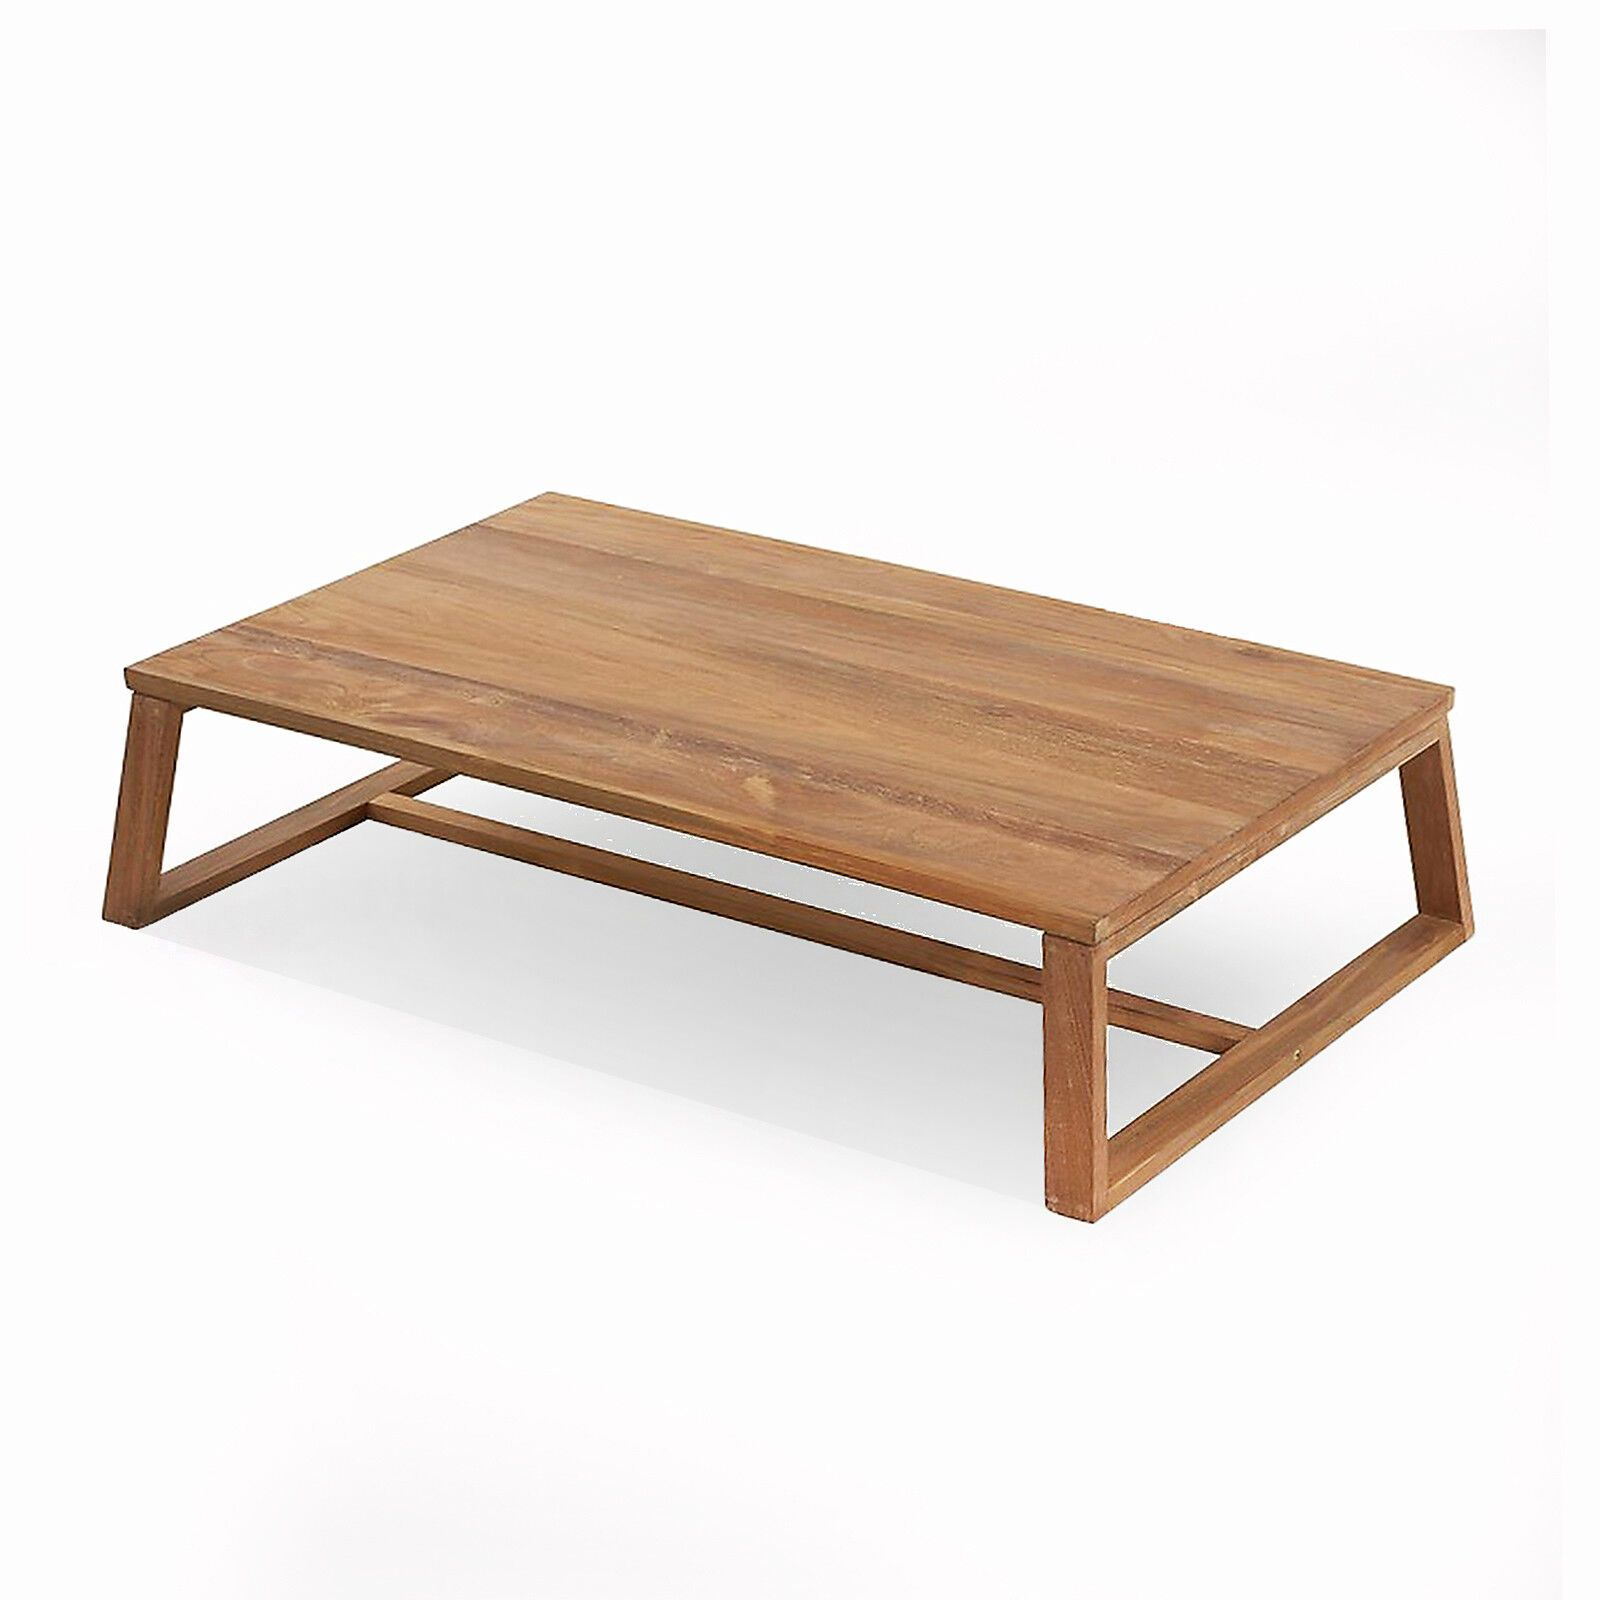 Couchtisch Aus Teak Fsc Recycled 131x81x35cm Braun Depot Teak Coffee Table Furniture